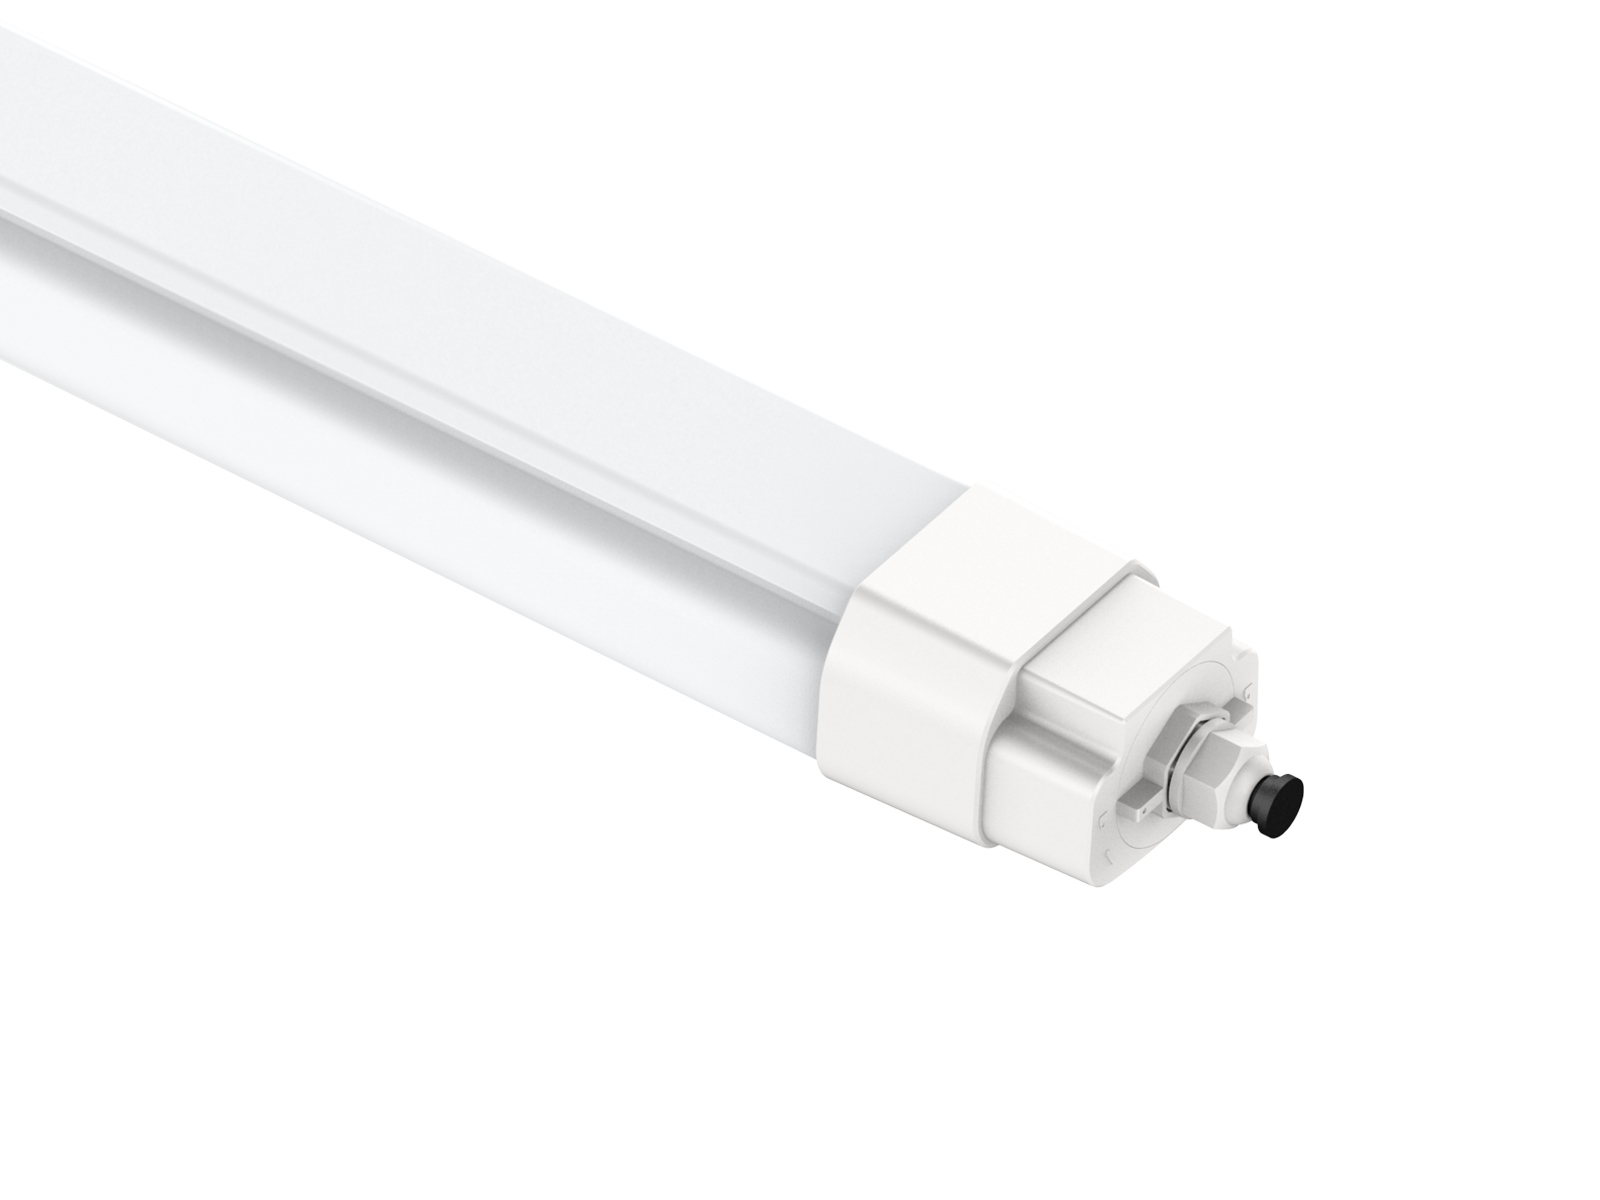 LED Batten Light DB68 IP66 Waterproof Easy Lamp Replacement